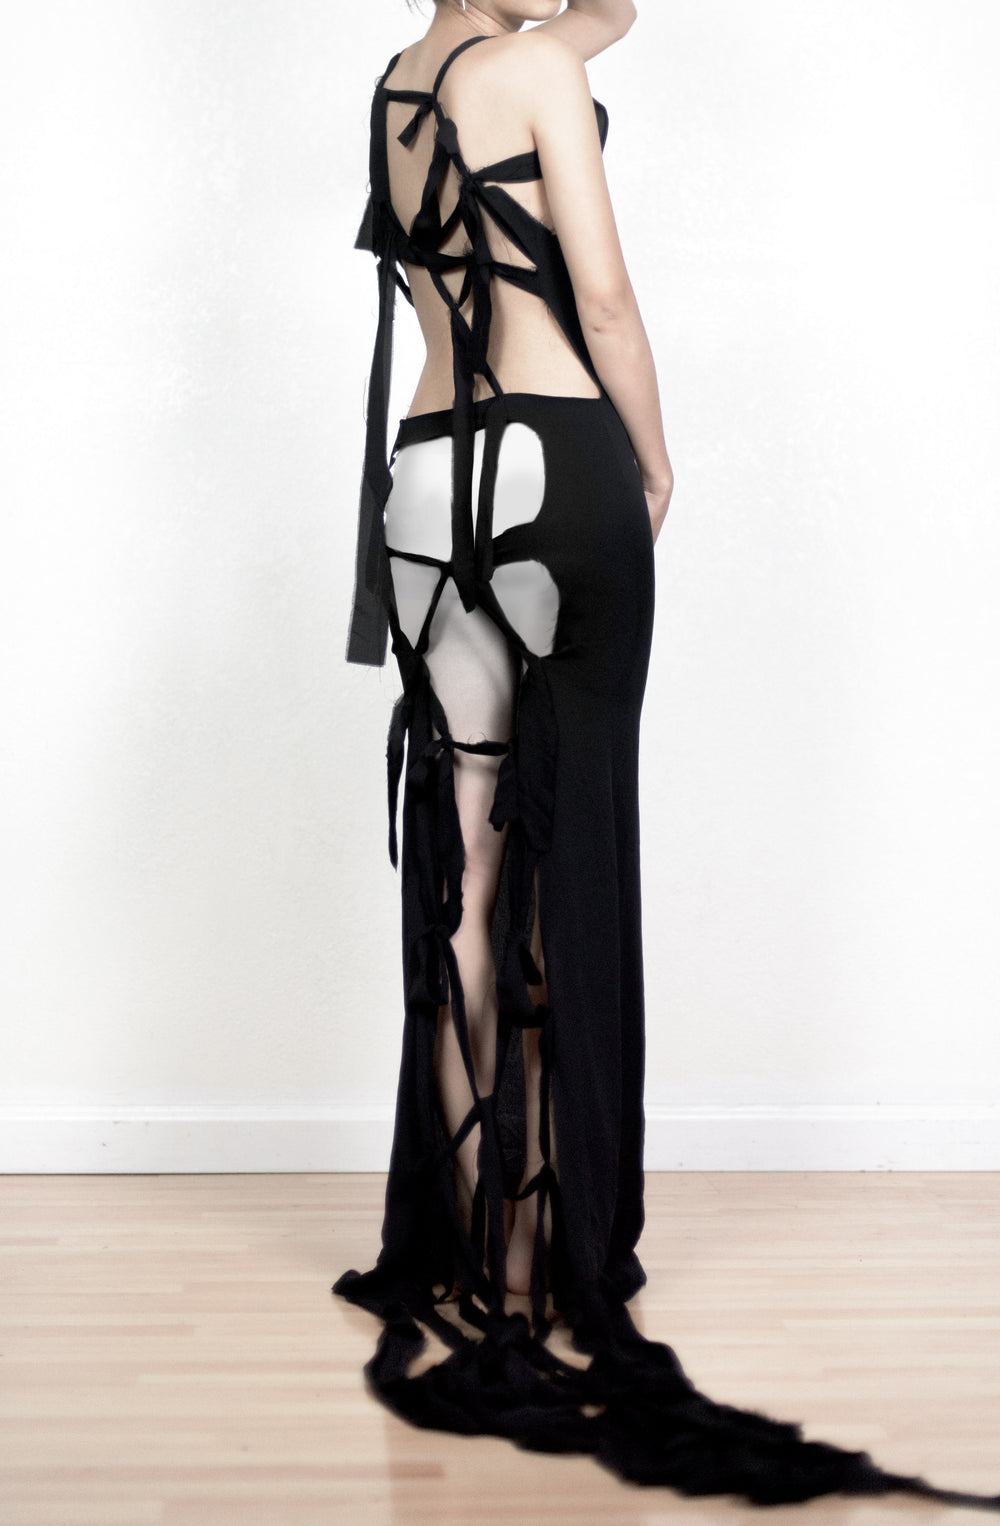 Maison Martin Margiela SS10 Deconstructed Net Dress